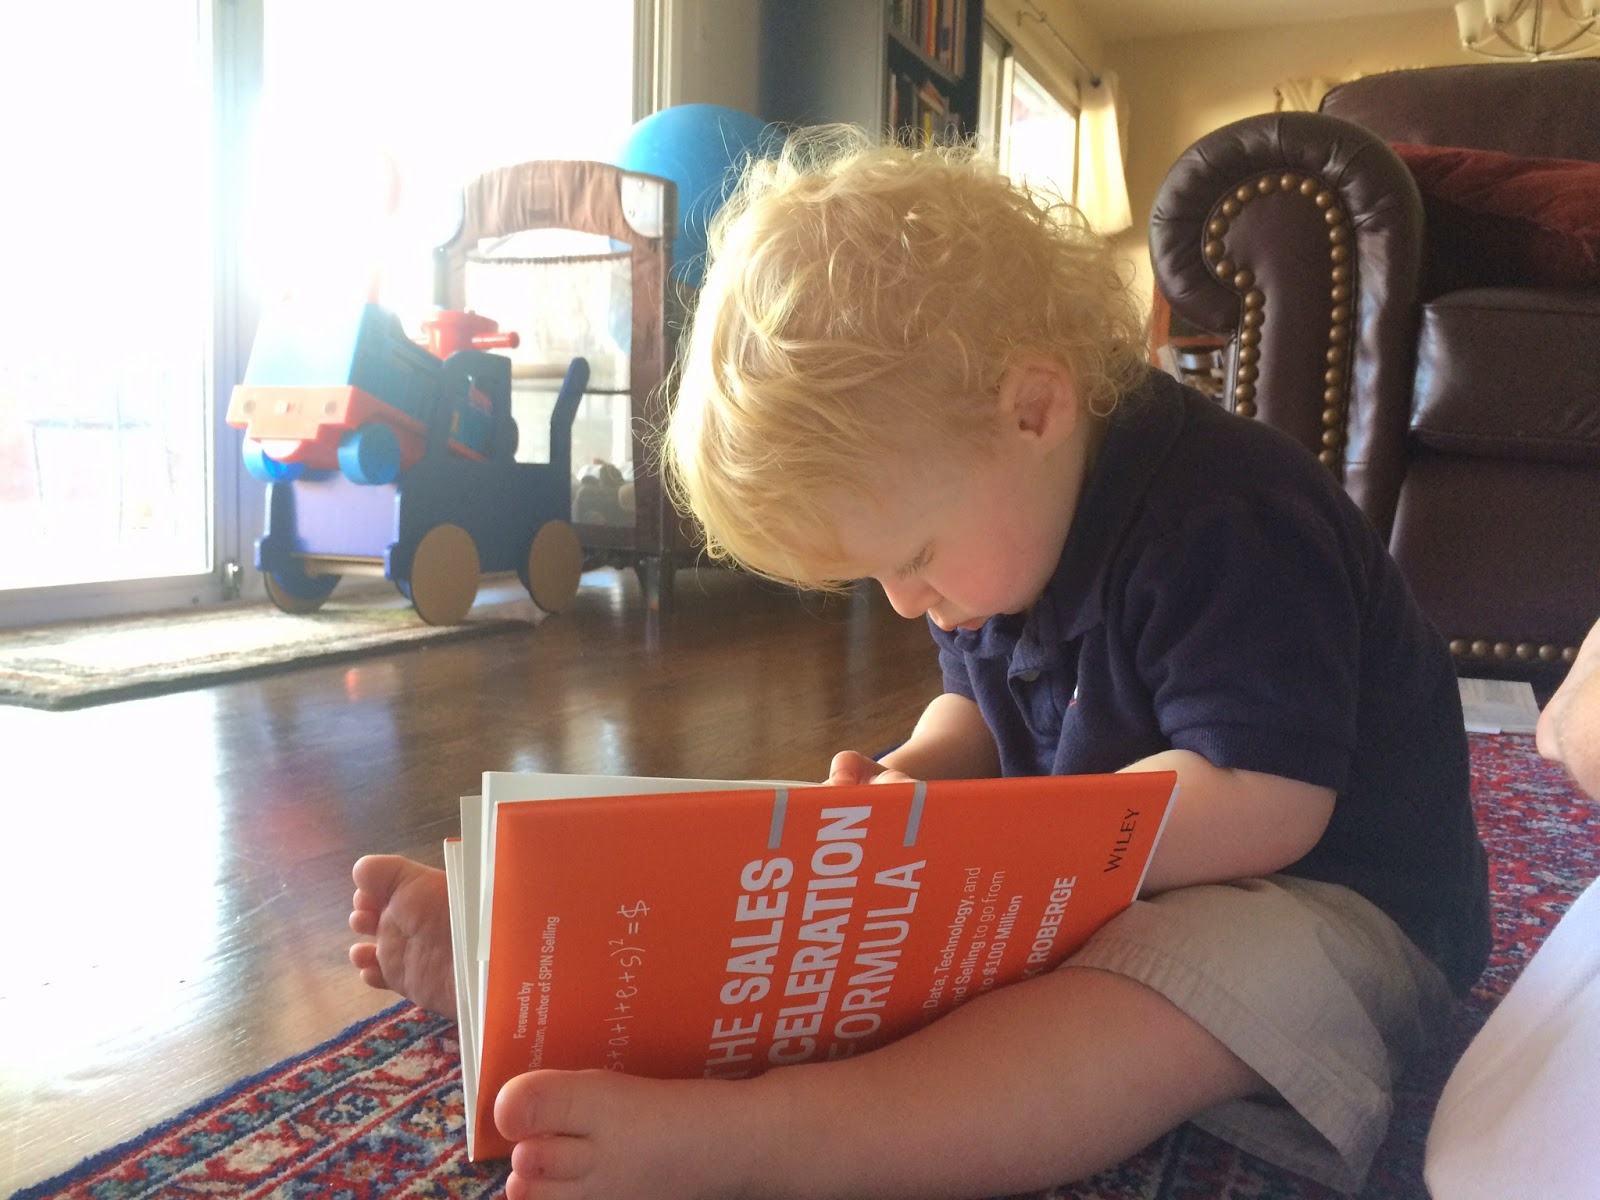 Worksheet Q Reading Level another q new reading level gramz ive moved on from books about trains to accelerated sales techniques reports the grandkid